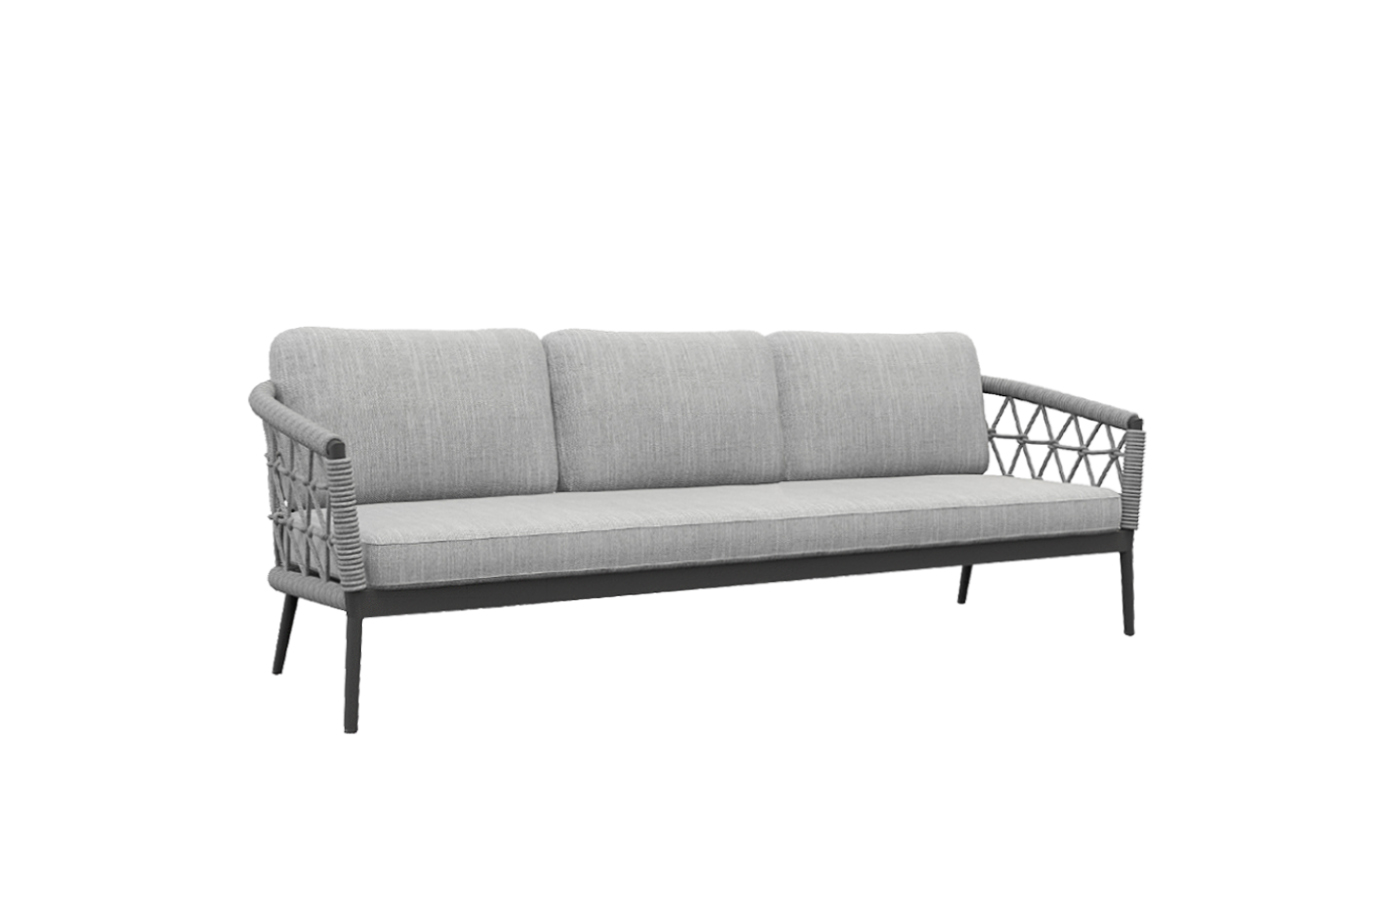 Muses 3-Seater Sofa Featured Image